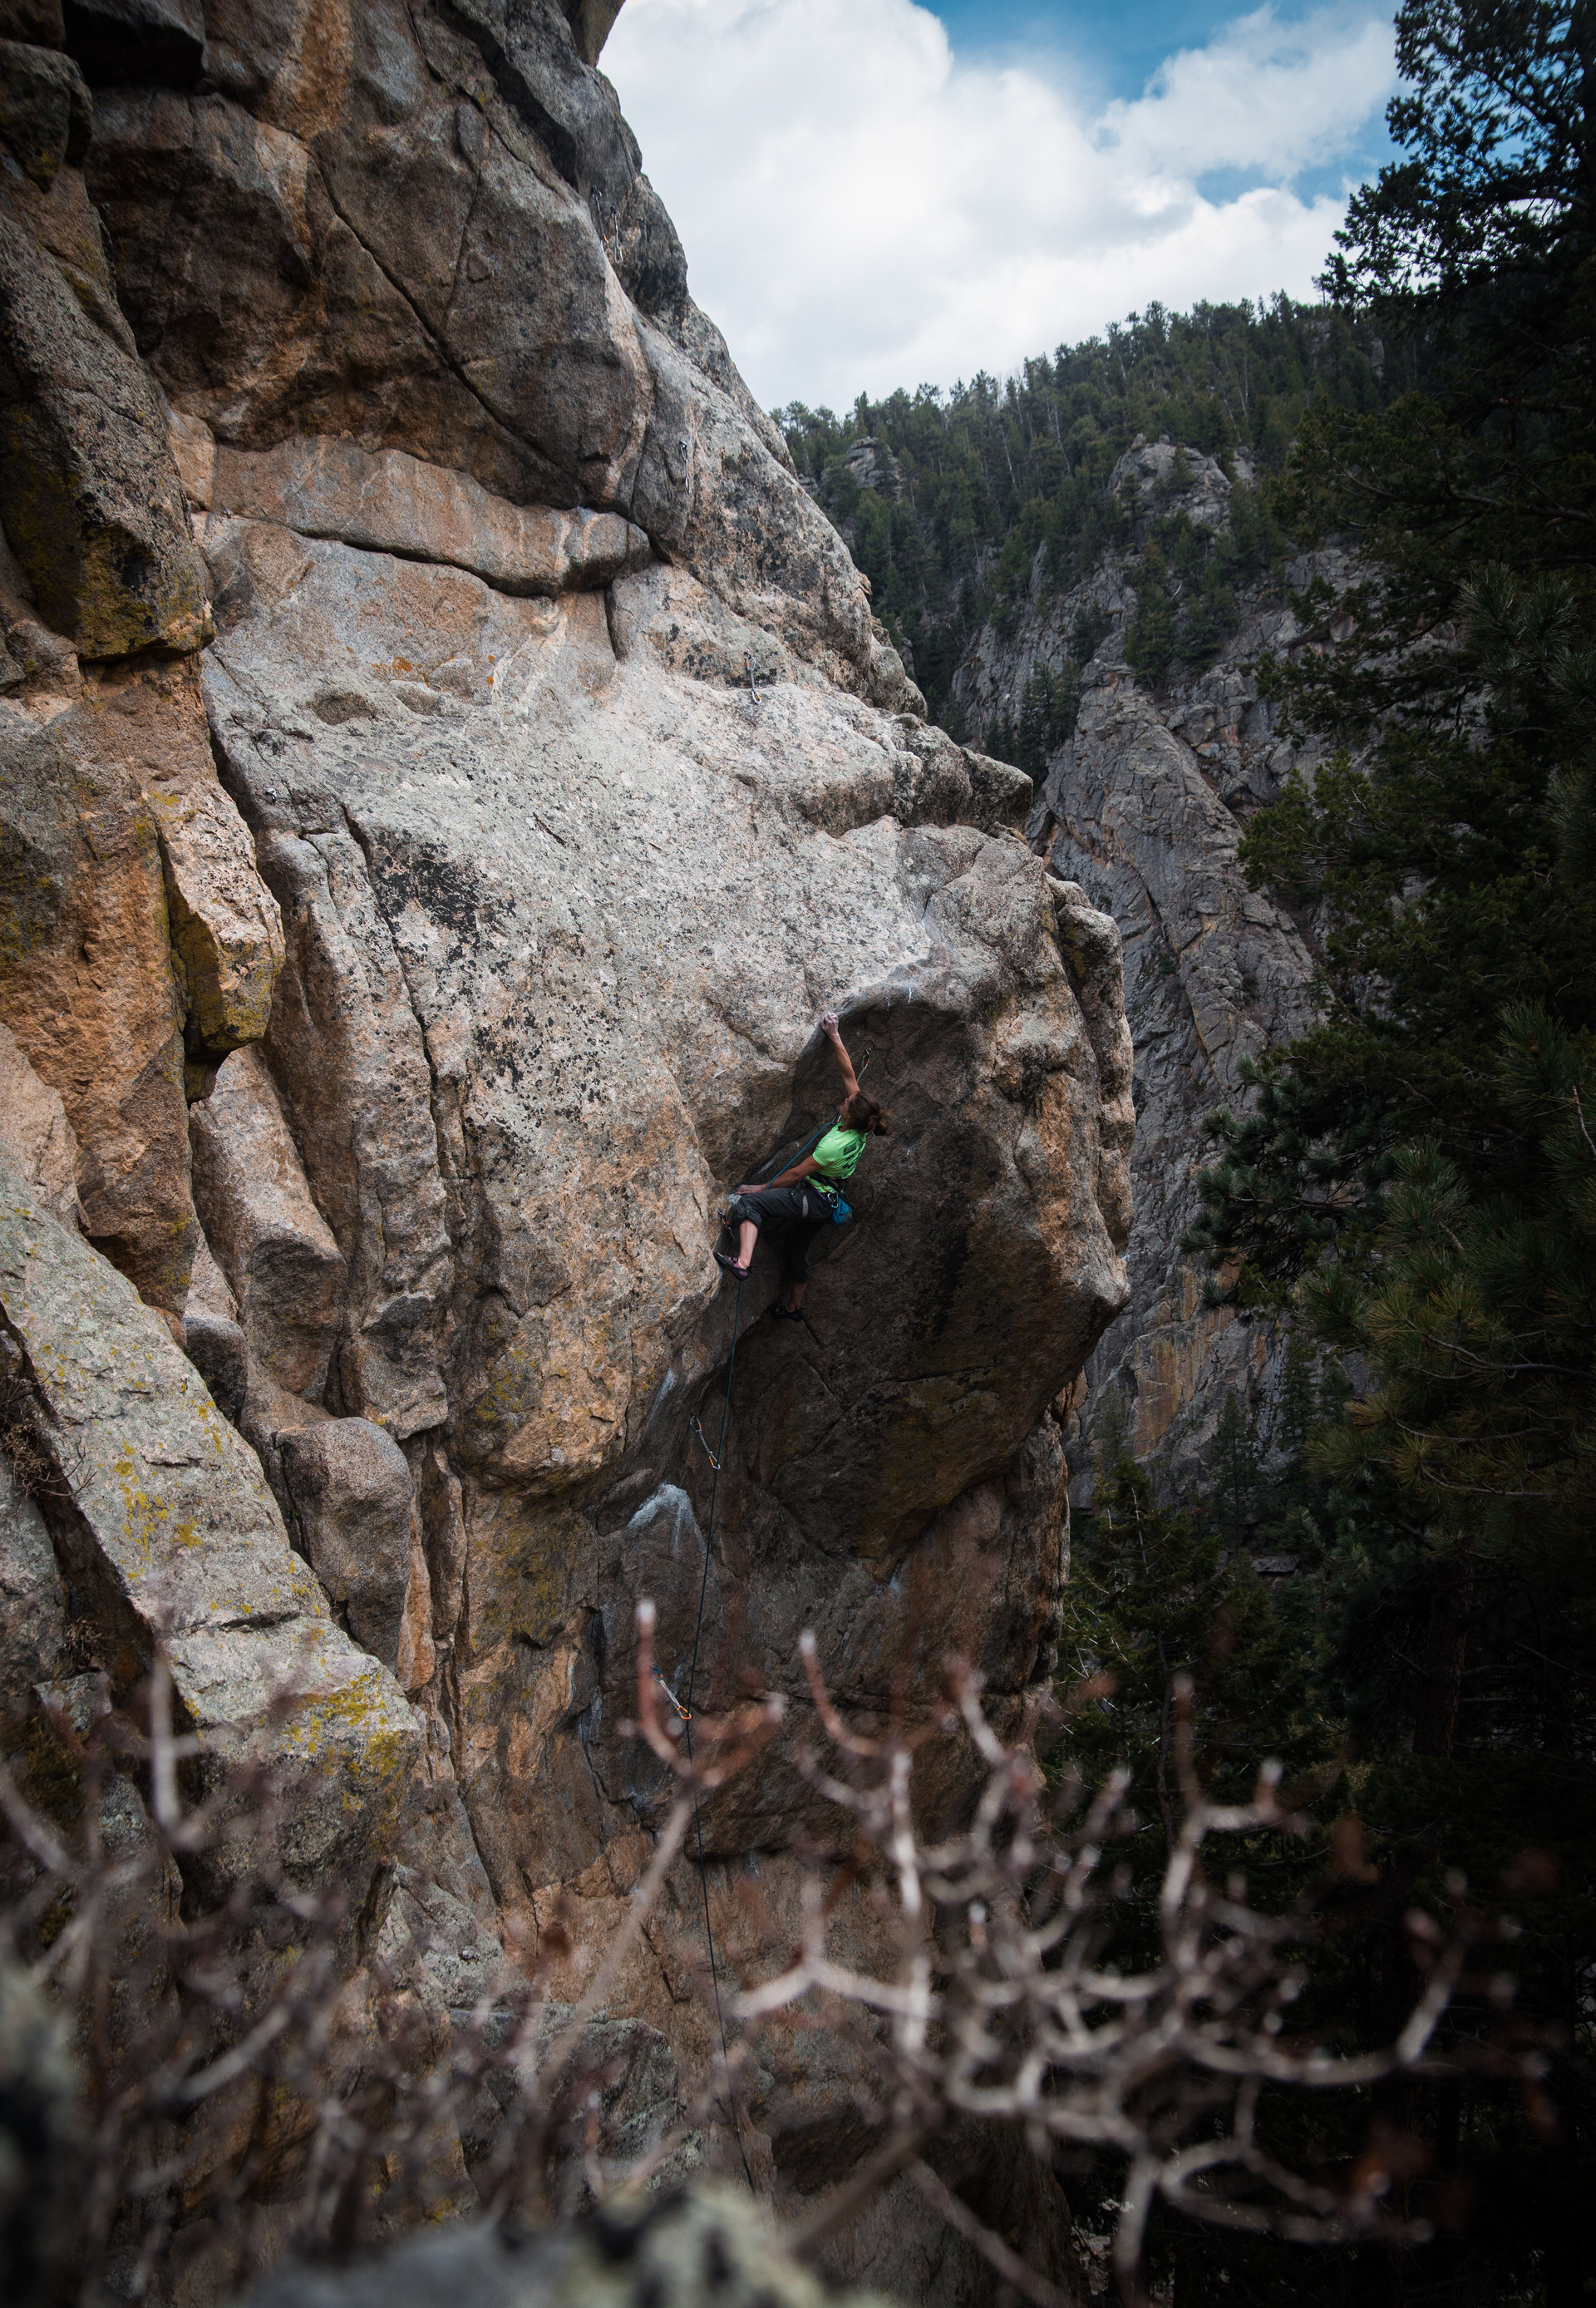 Animal Riots Activist 5.12a in Boulder Creek. This climb felt works up an easy but technical face to a big-move-if-you're-short crux! Alicia gave it some serious burns but it looks like this one will go next time.